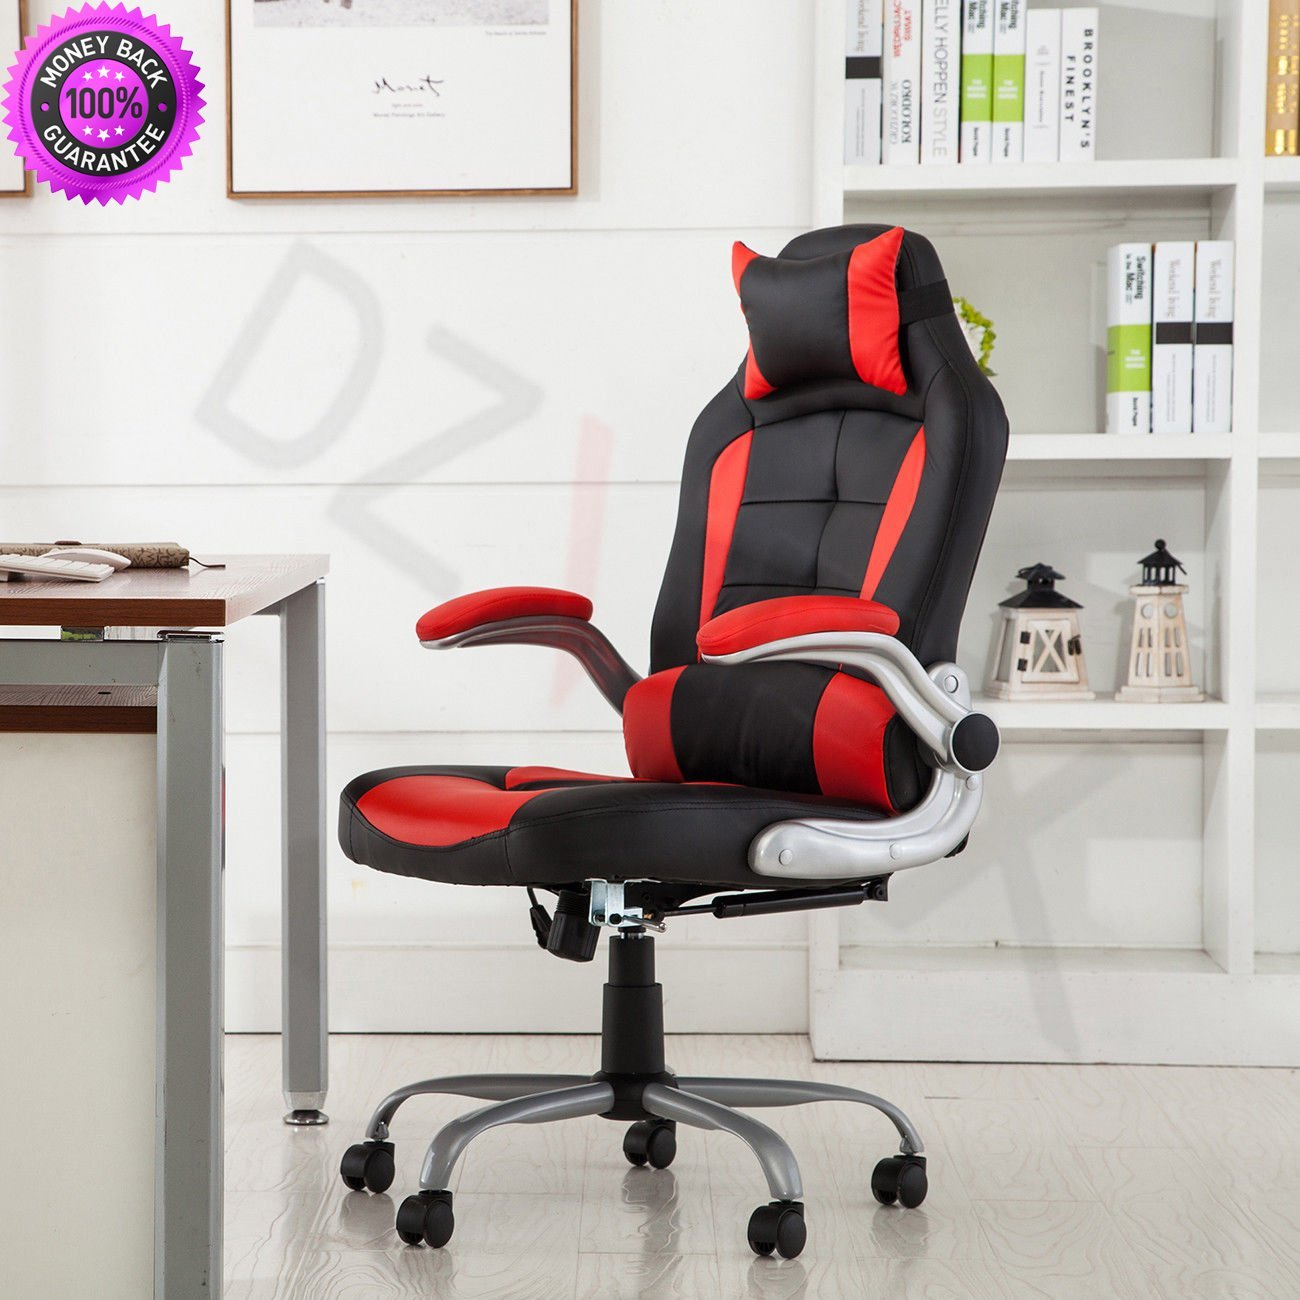 DzVeX__Racing Office Chair Recliner Relax Gaming Executive Computer Ergonomic High Back and waiting room chairs office furniture chair mats for carpet chairs for sale cheap And office chairs